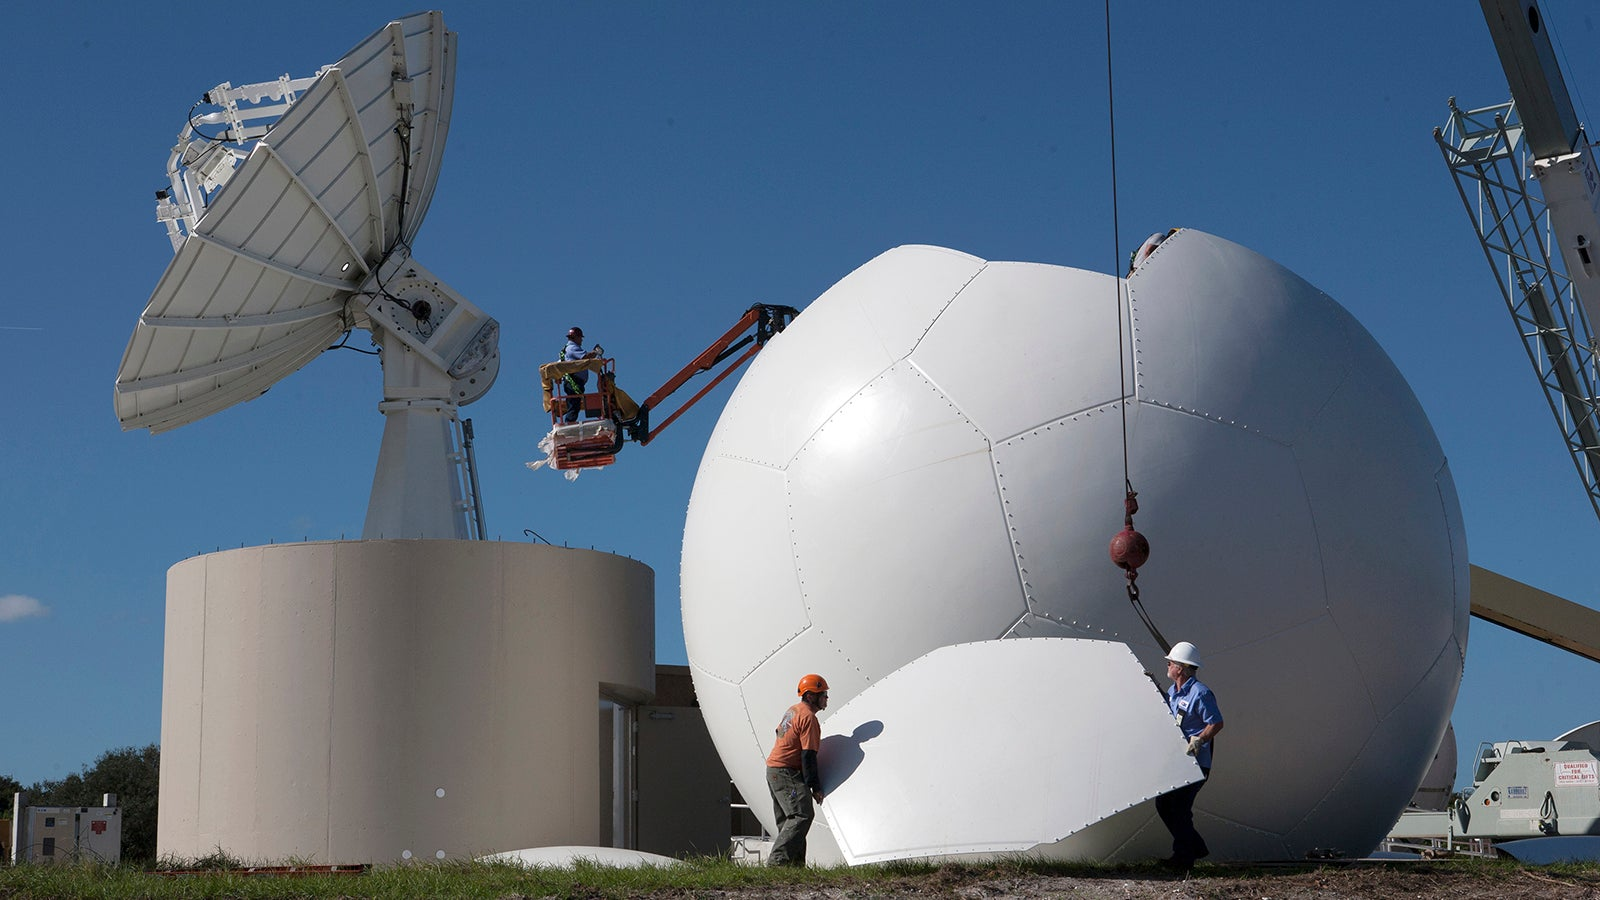 Why Is NASA Building This Giant Soccer Ball?